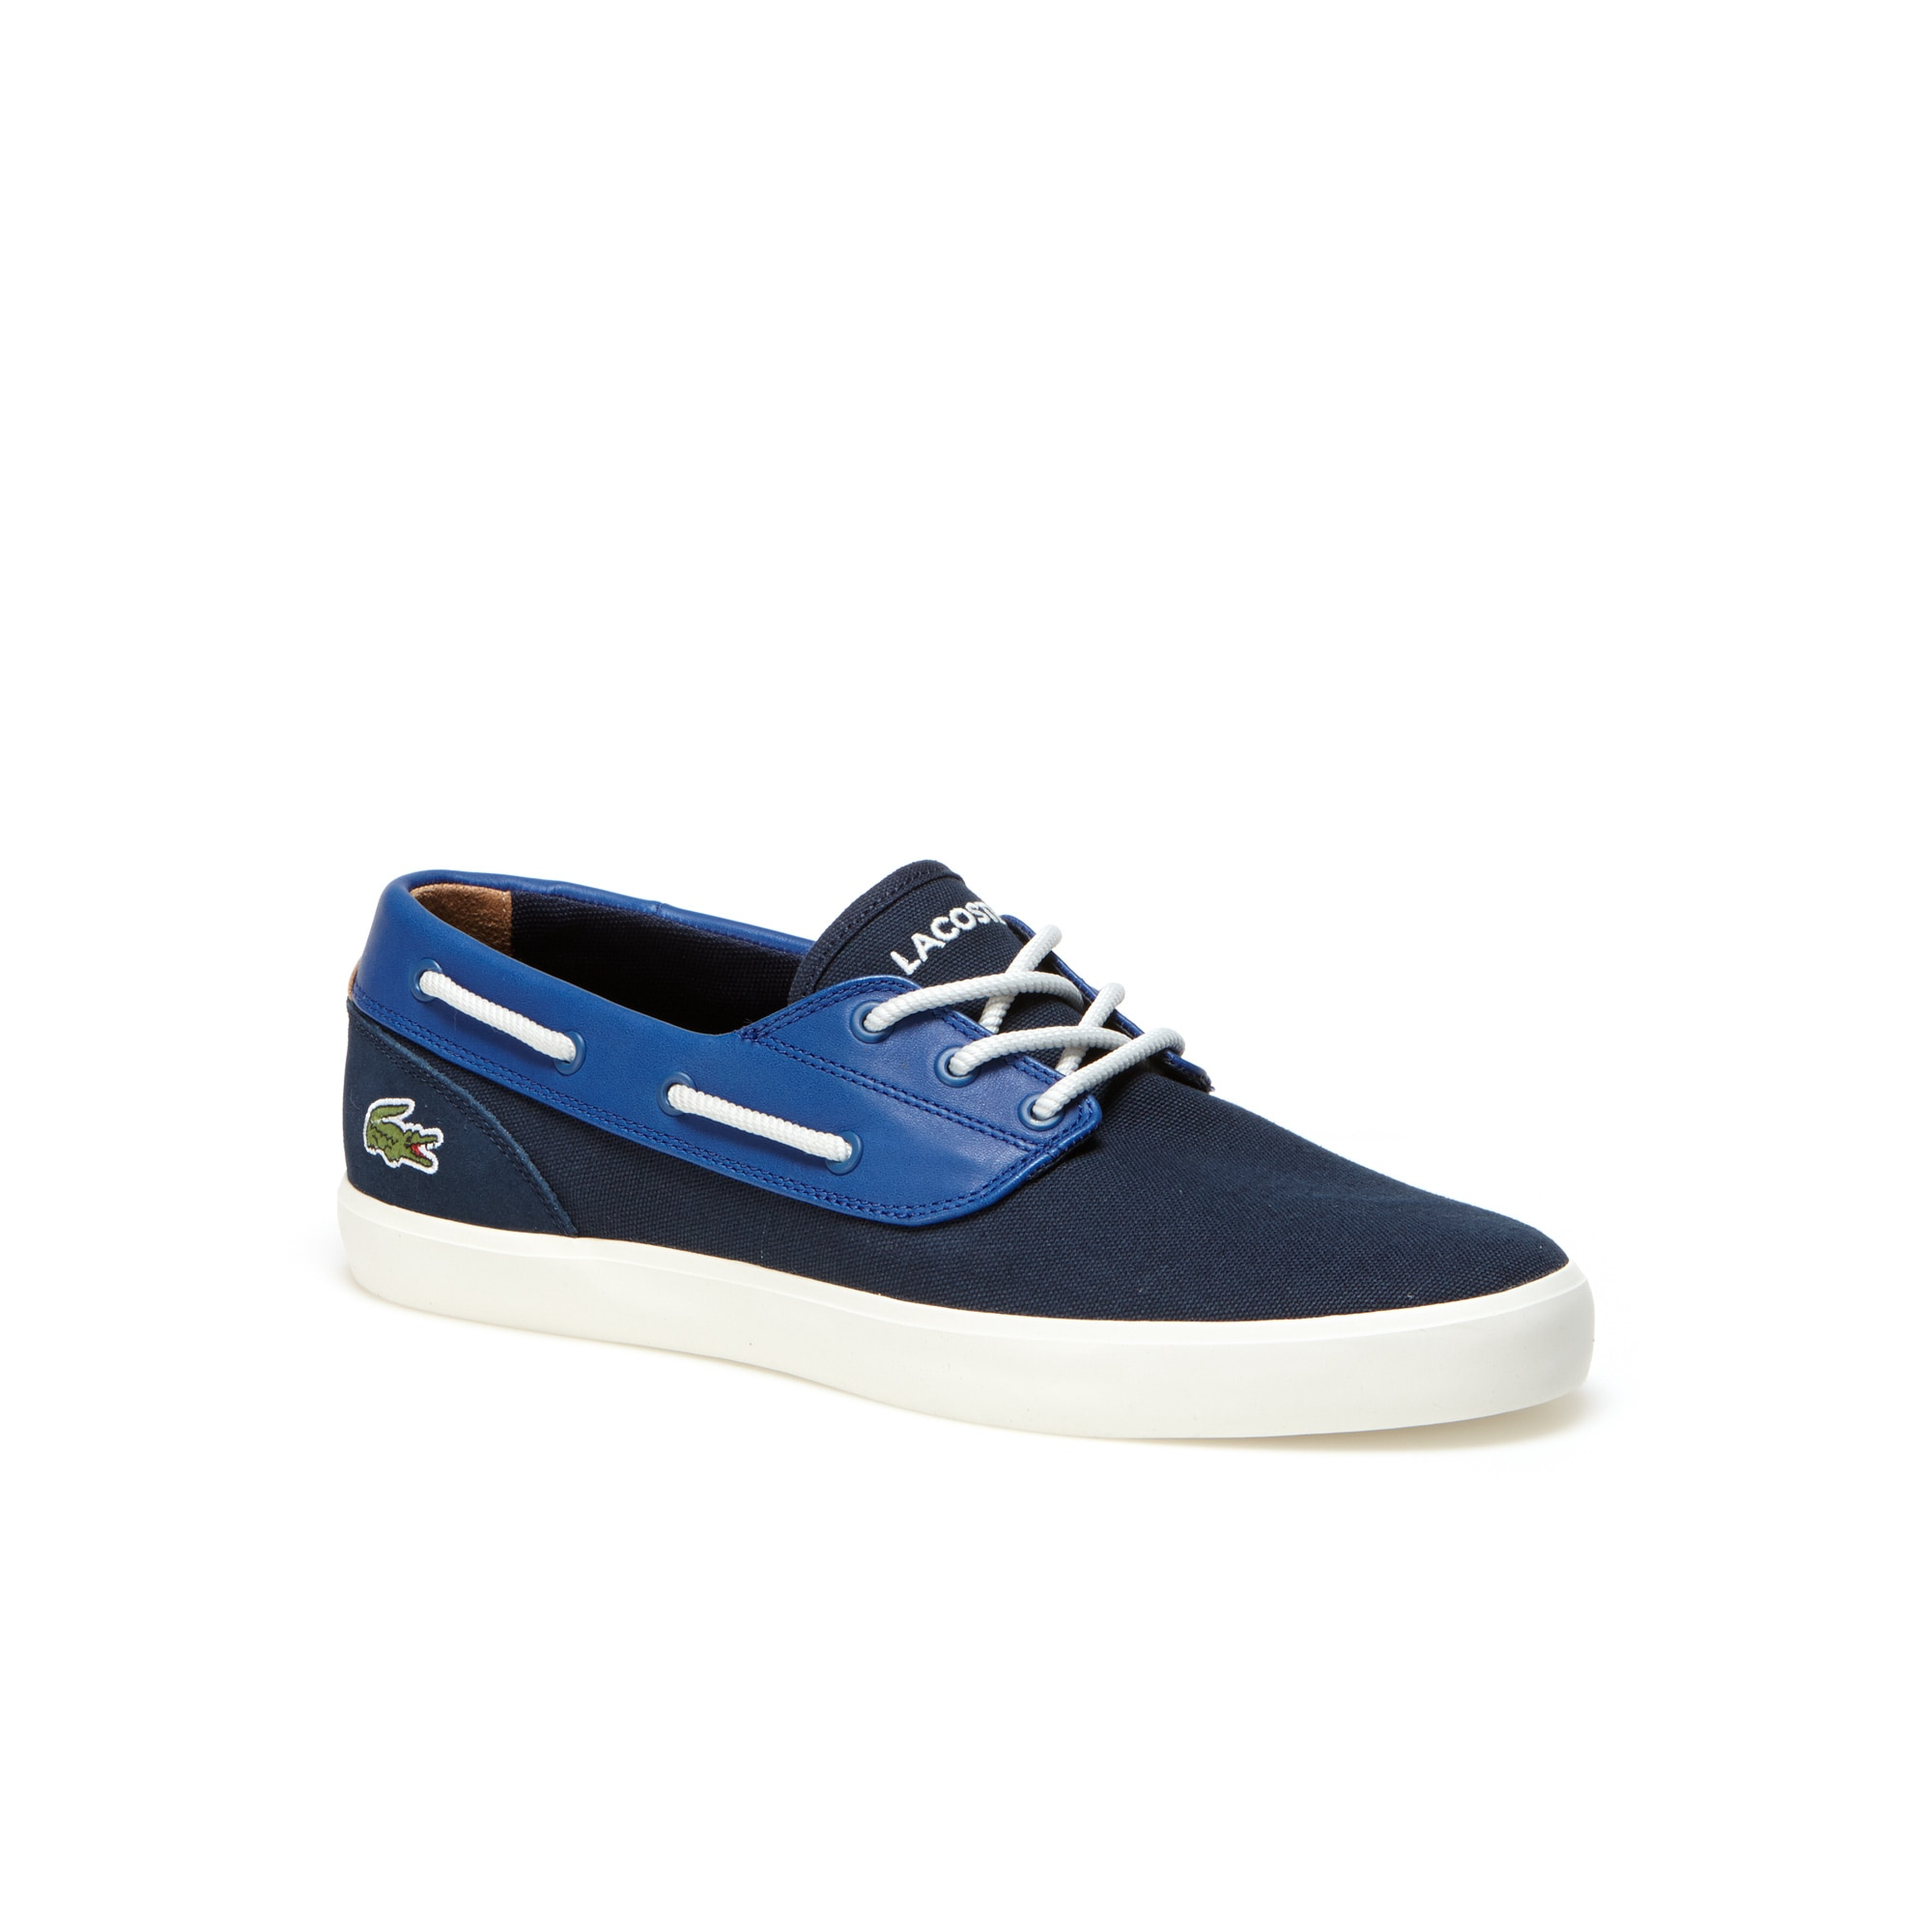 Men's Jouer Canvas And Leather Boat Shoes